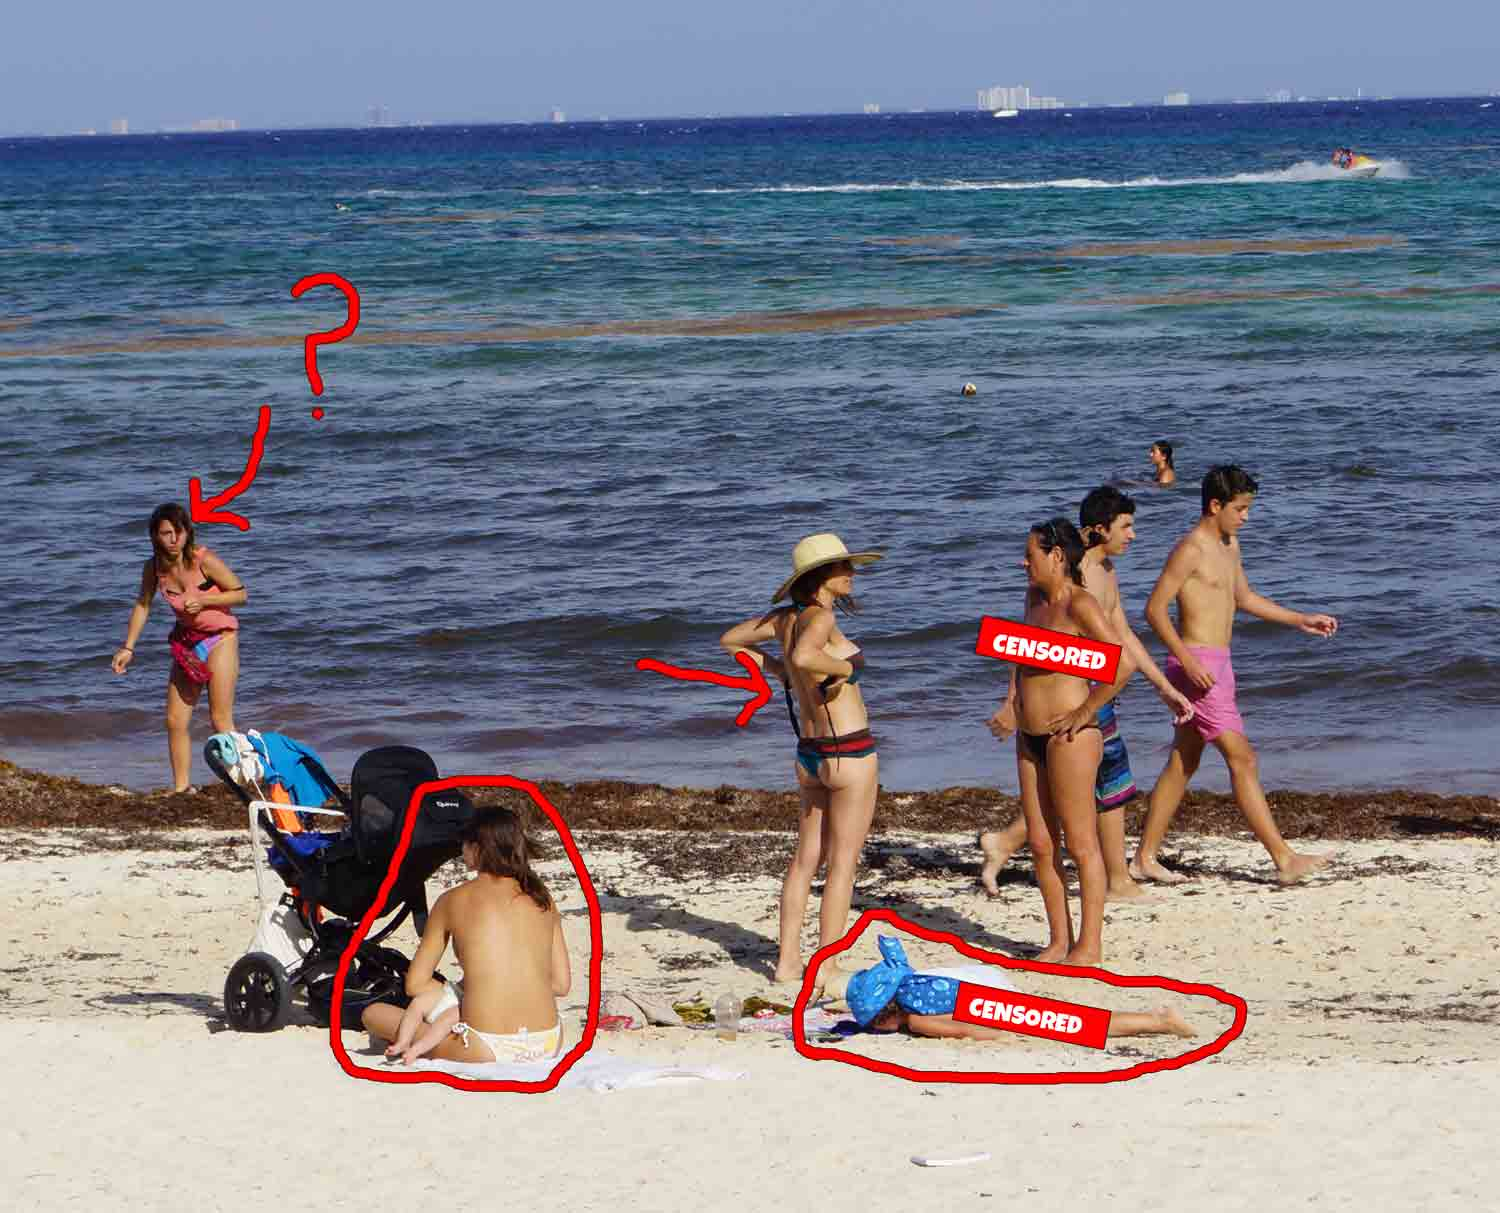 A group of women taking off their tops at a Playa Del Carmen beach.